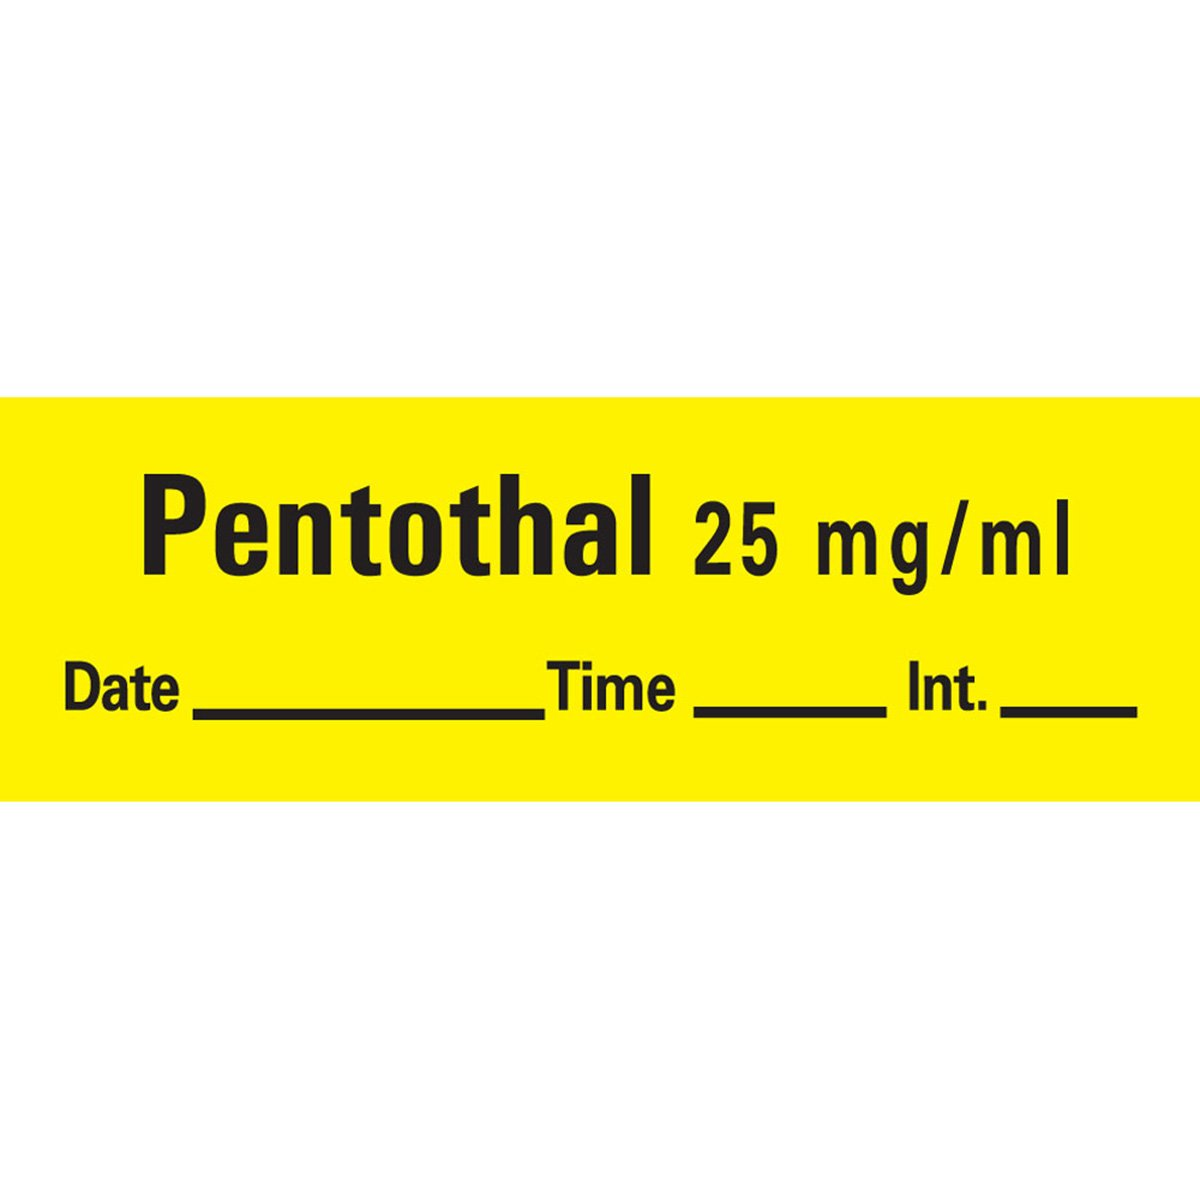 PDC Healthcare AN-79 Anesthesia Tape with Date, Time and Initial, Removable, Pentothal 25 mg/mL, 1'' Core, 1/2'' x 500'', Imprints Yellow 333 (Pack of 1)